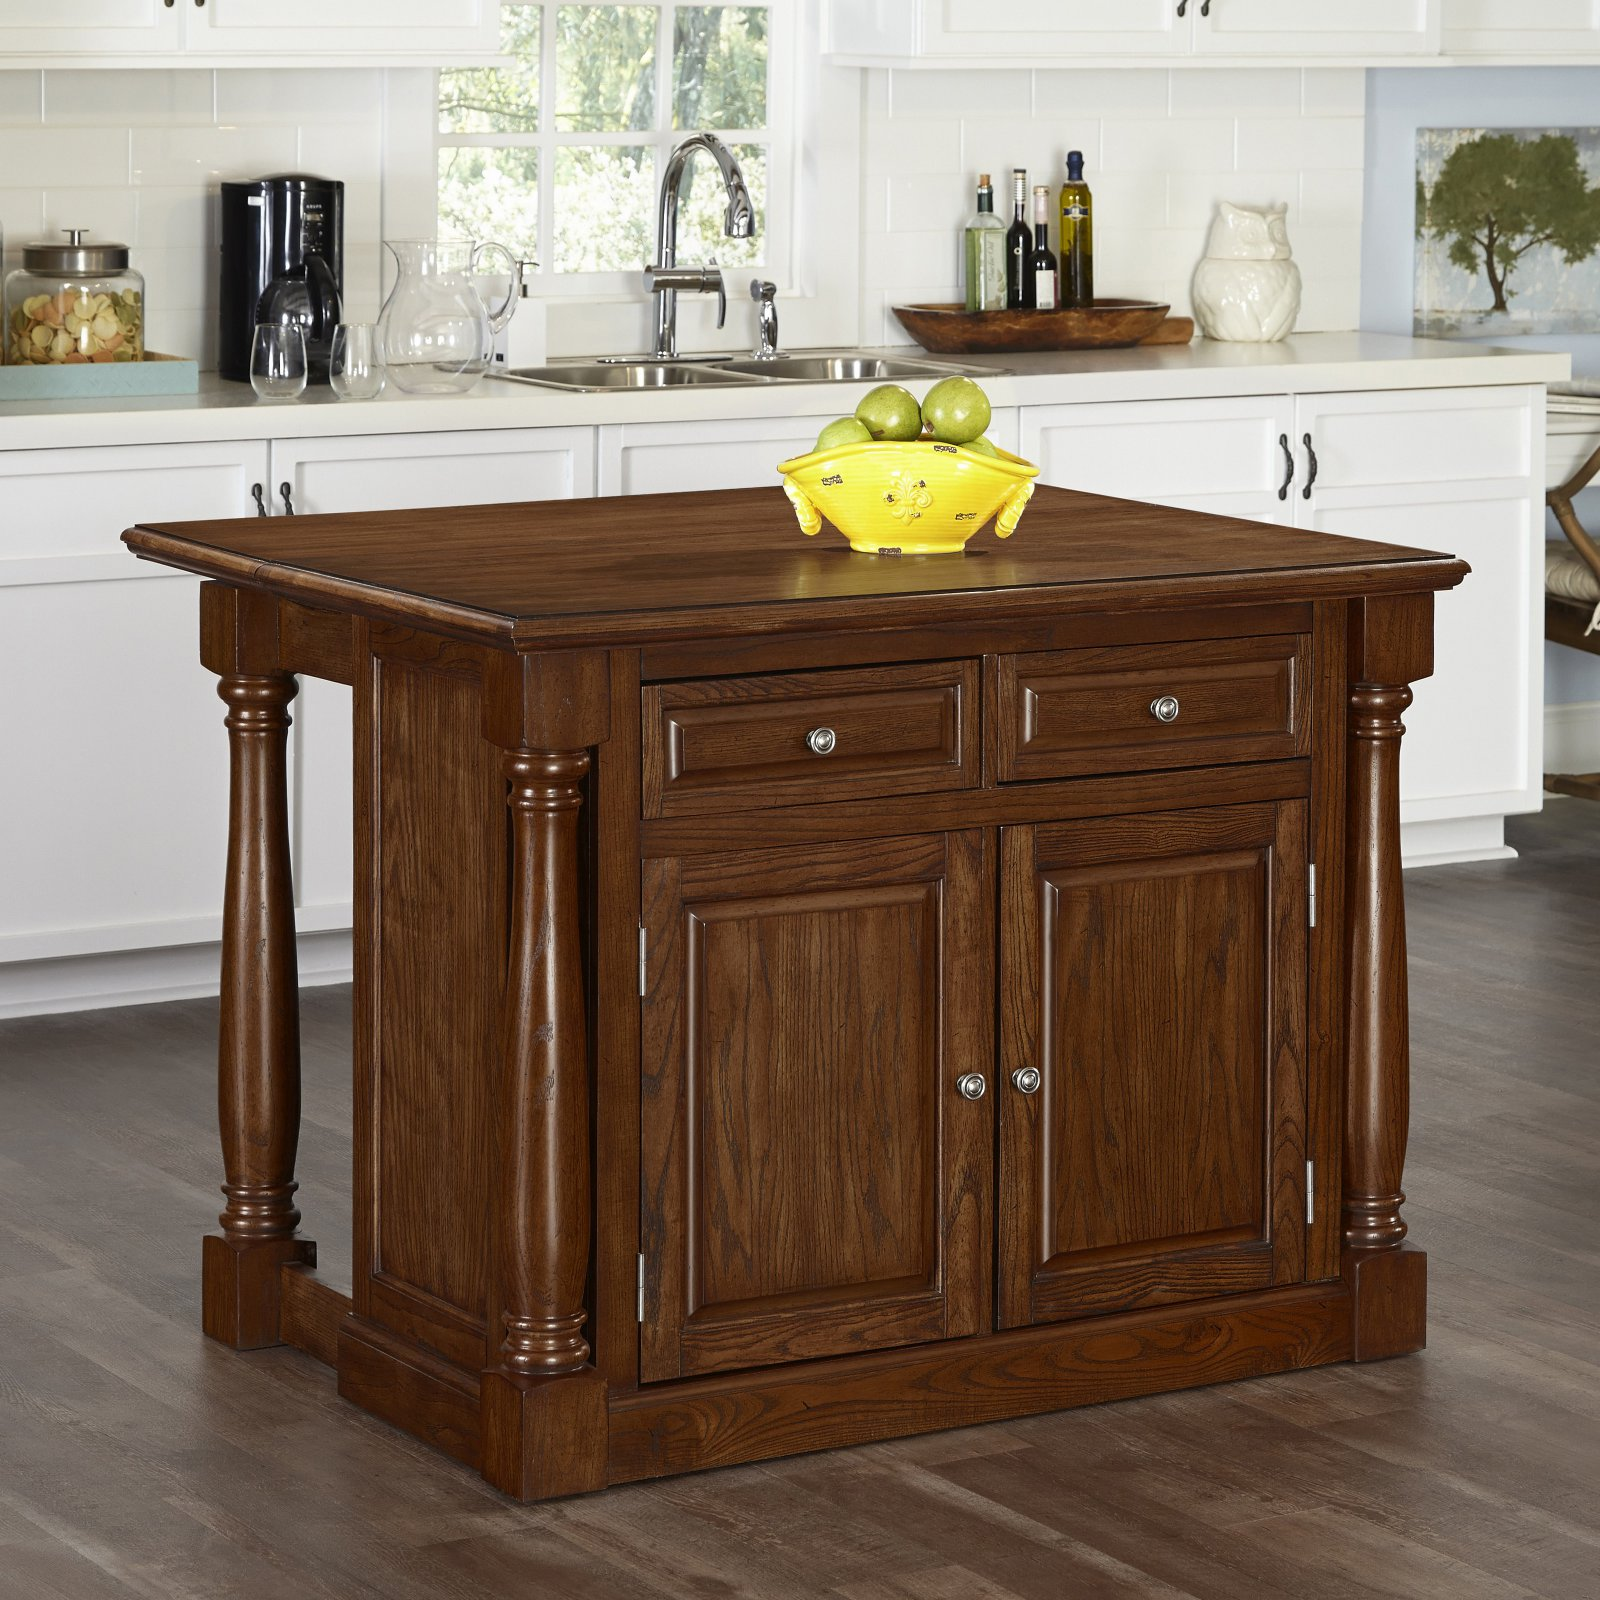 Home Styles Monarch Oak Kitchen Island and 2 Stools